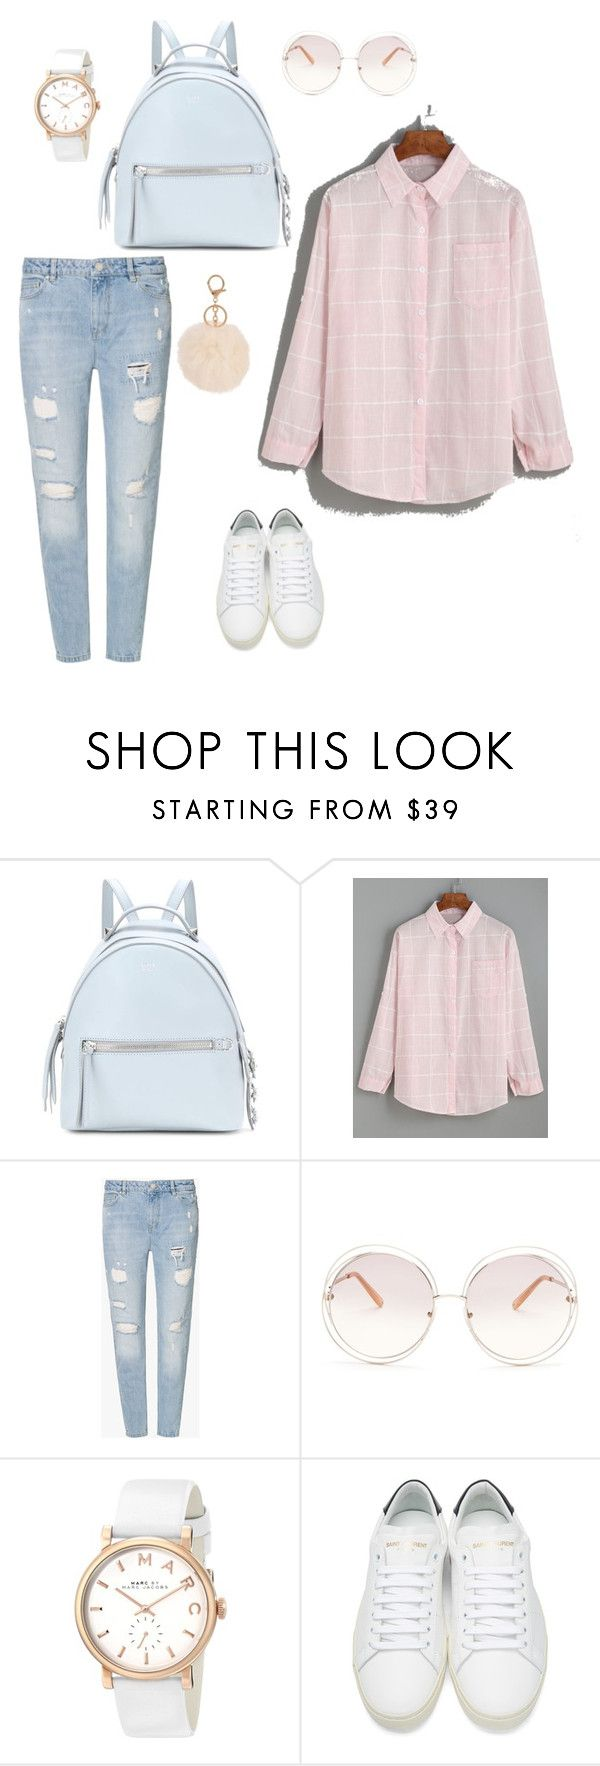 """""""1Day"""" by alenakrasa ❤ liked on Polyvore featuring Fendi, Zoe Karssen, Chloé, Marc by Marc Jacobs, Yves Saint Laurent and Armitage Avenue"""